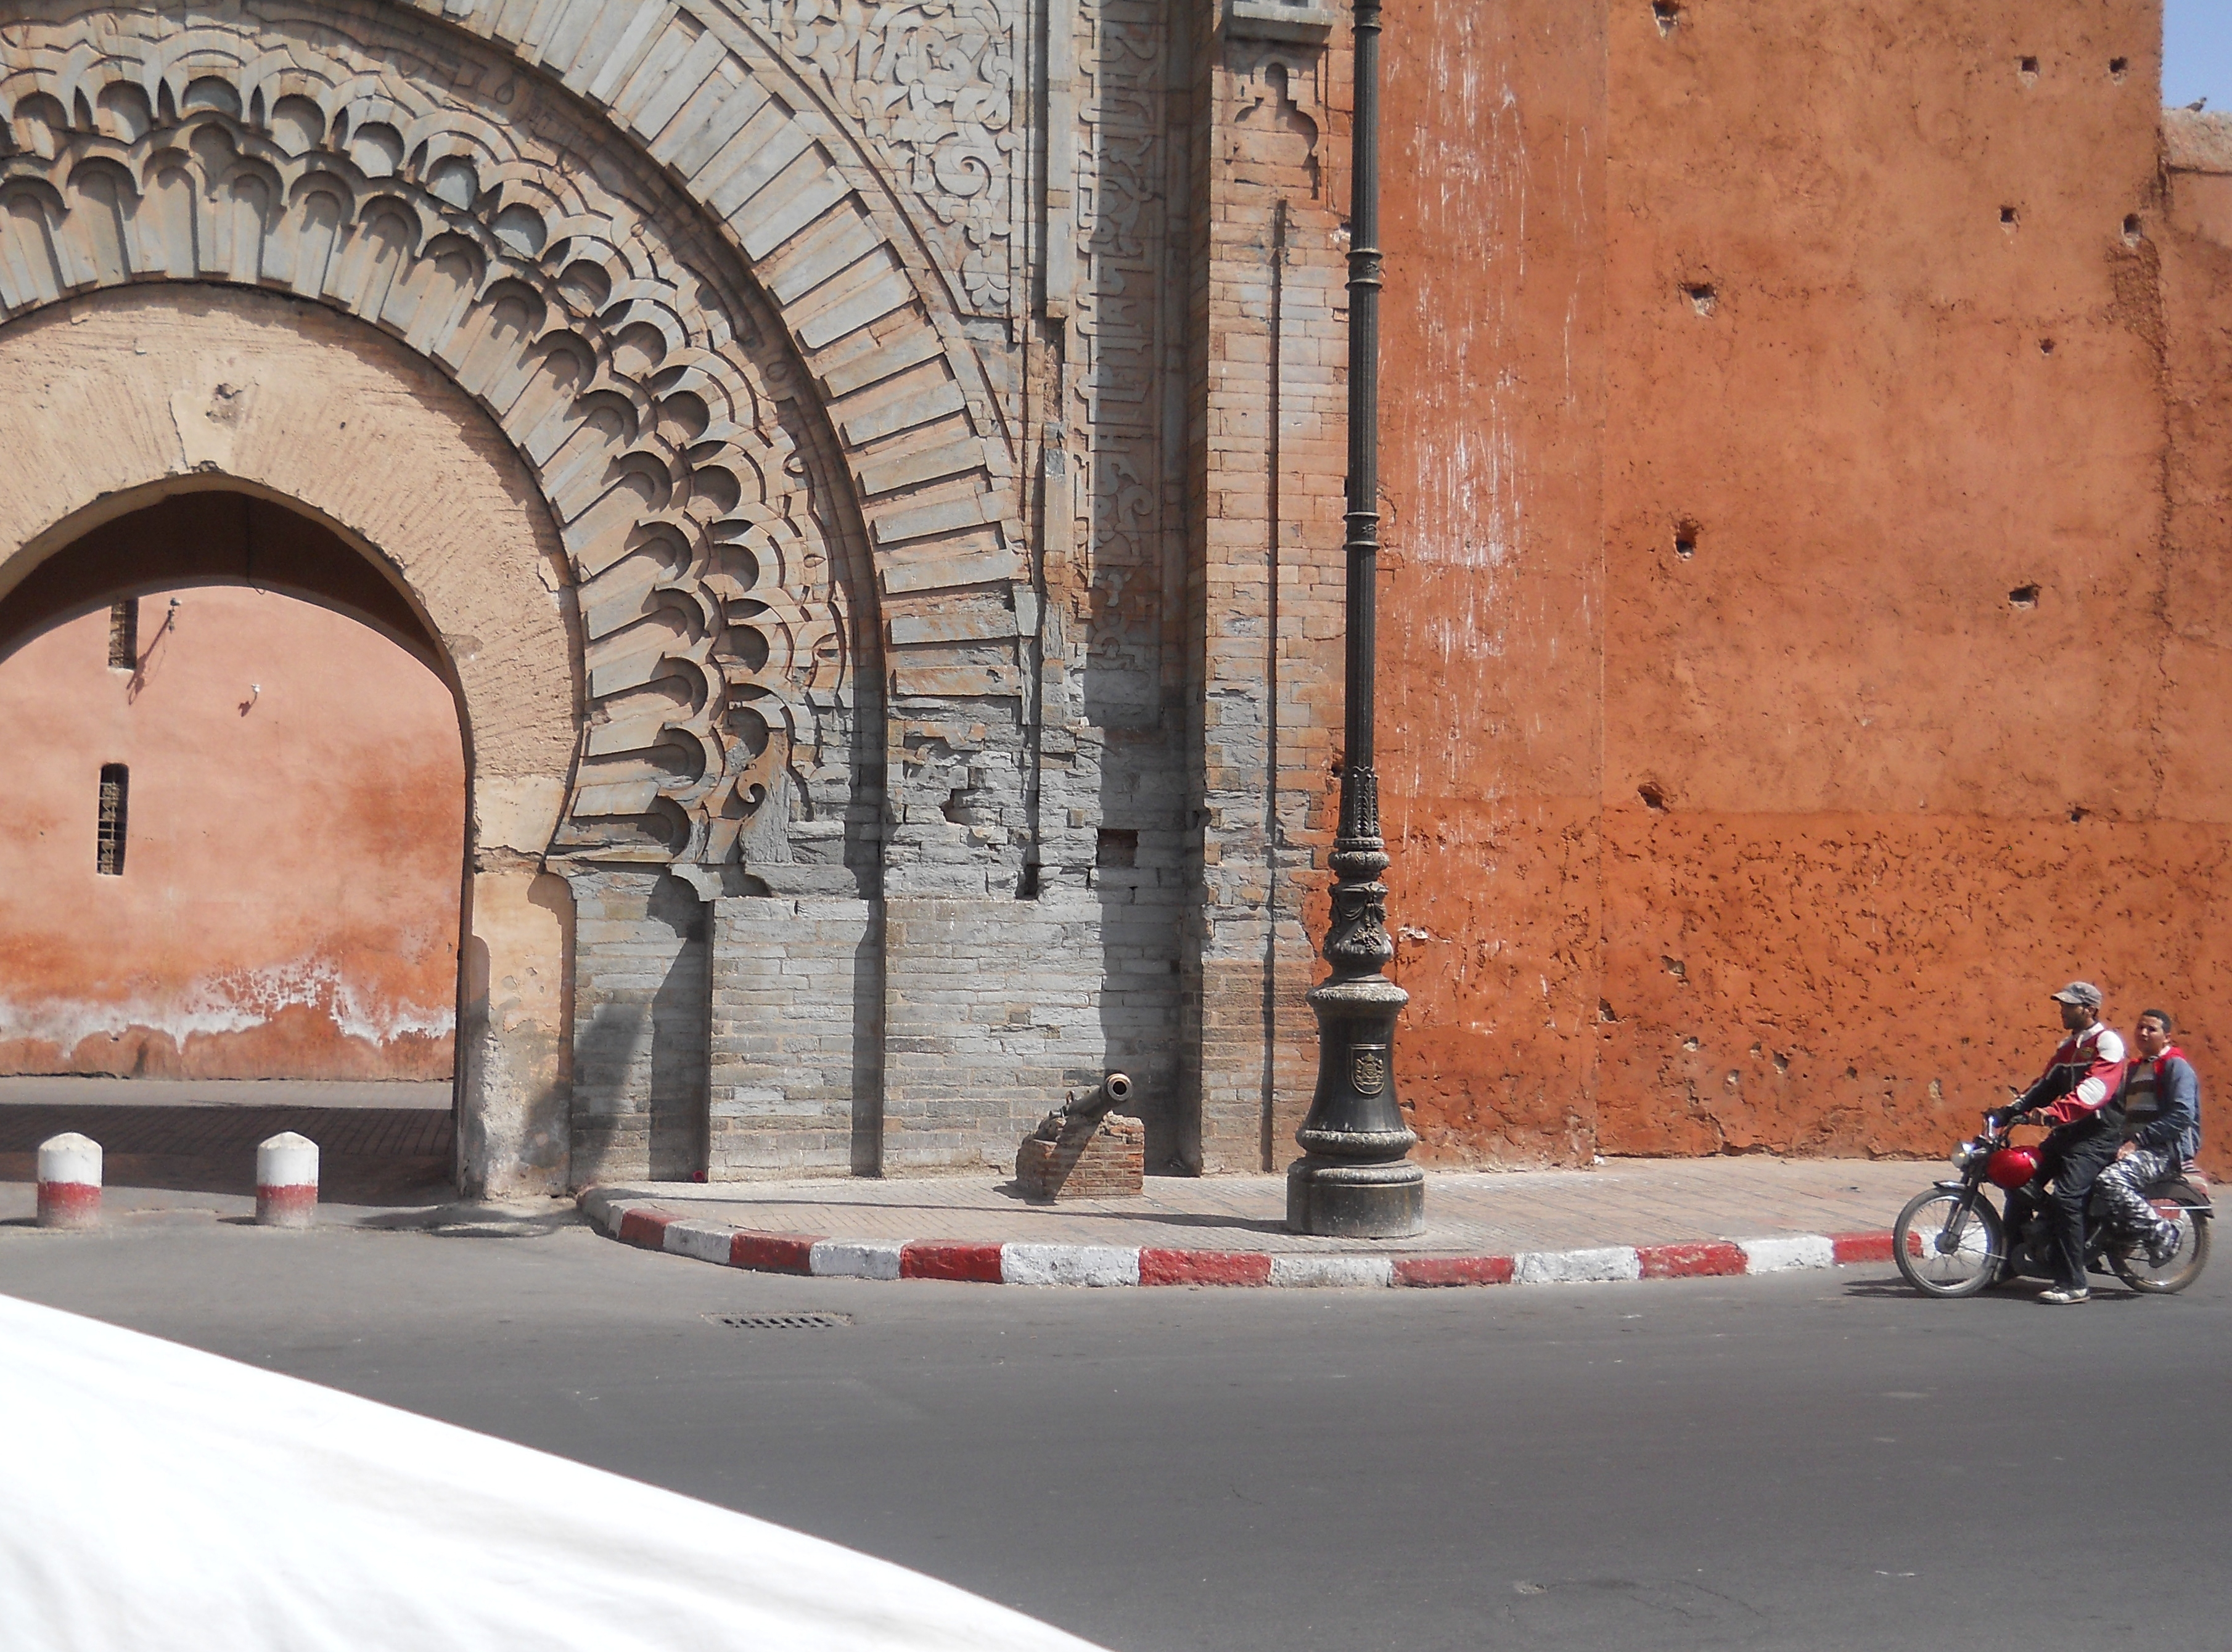 Morocco – Day One in Pictures